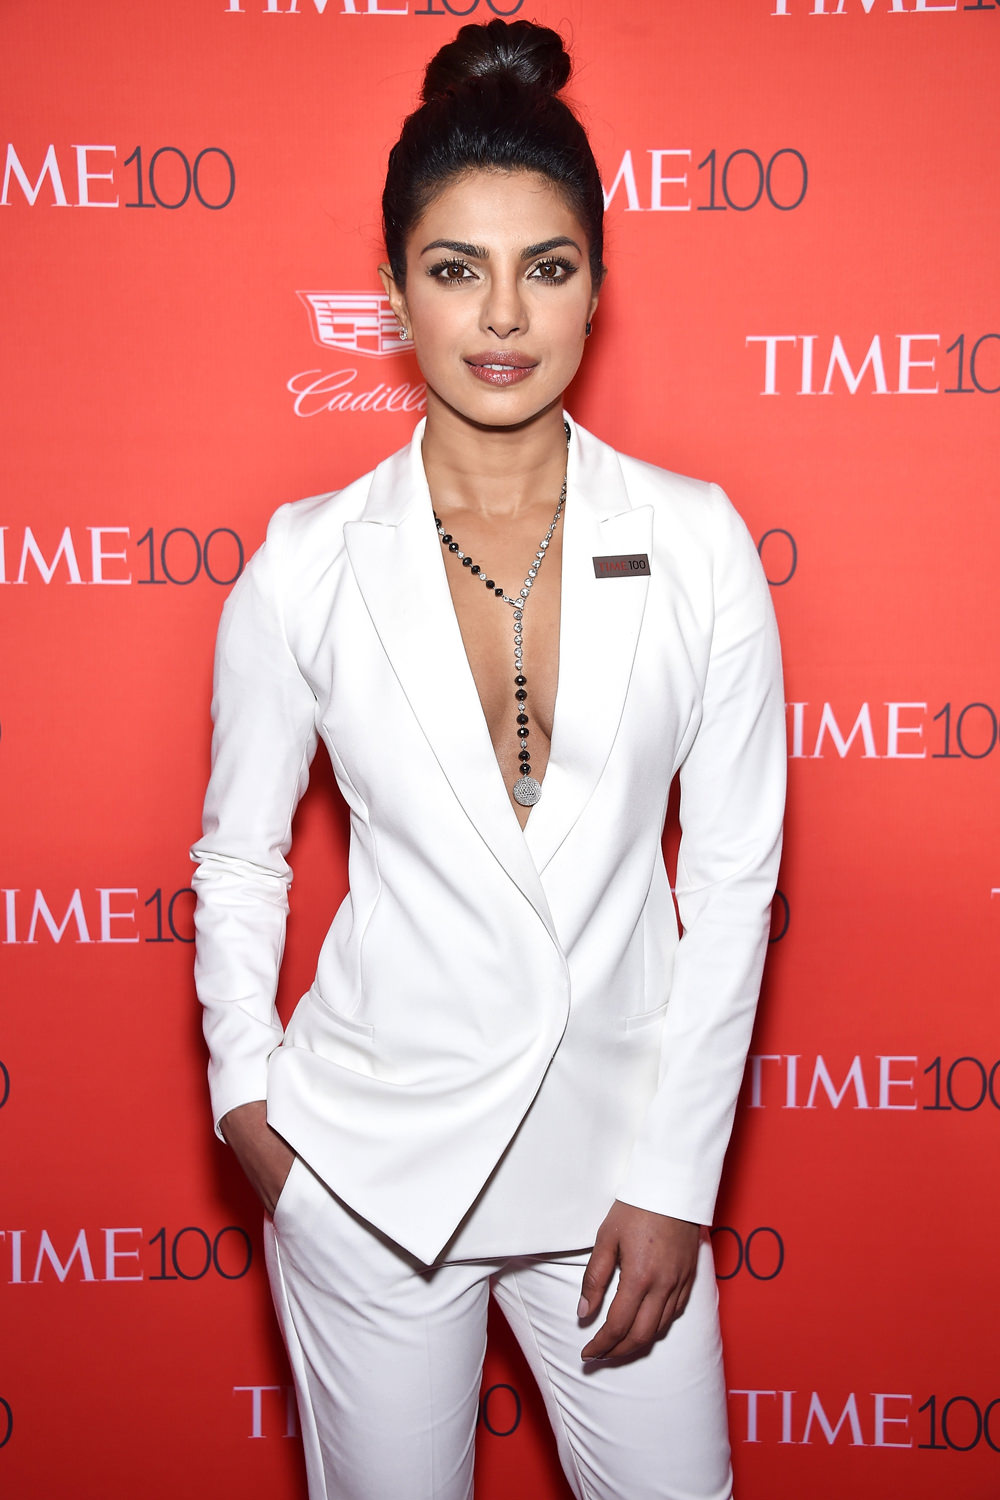 Priyanka Chopra in a white suit by Olcay Gulsen from ST Studio at TIME 100 Gala Event NYC